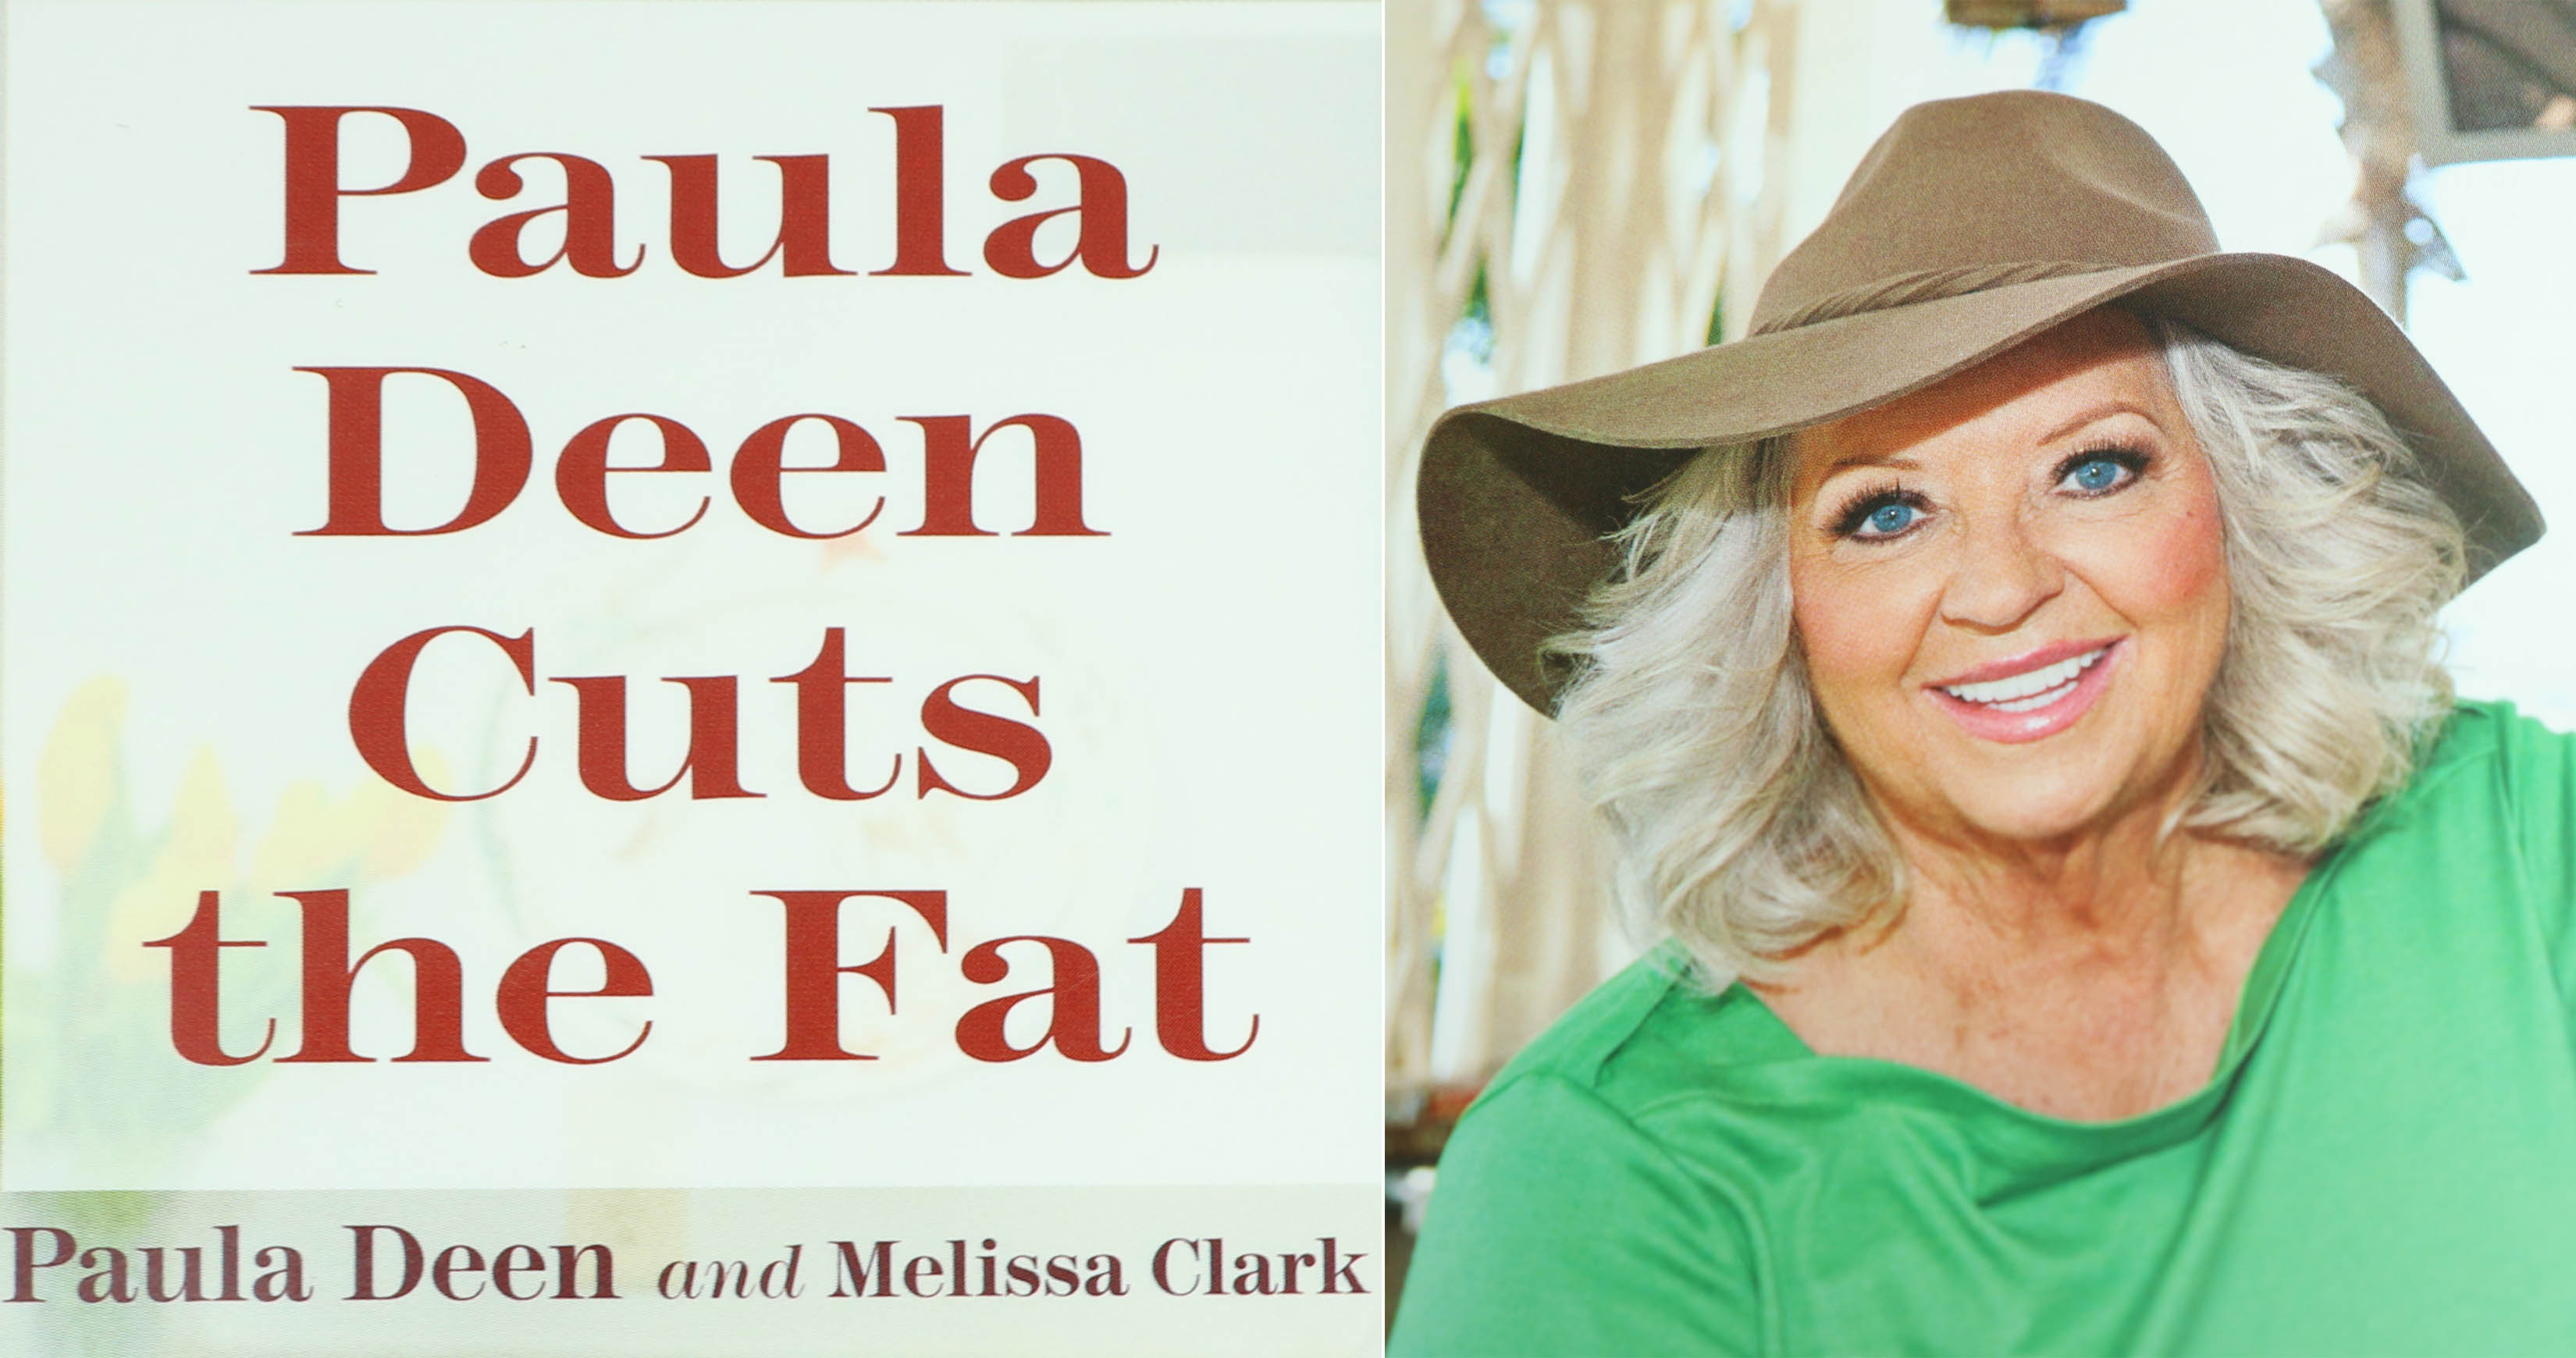 'Paula Deen Cuts the Fat' Cookbook